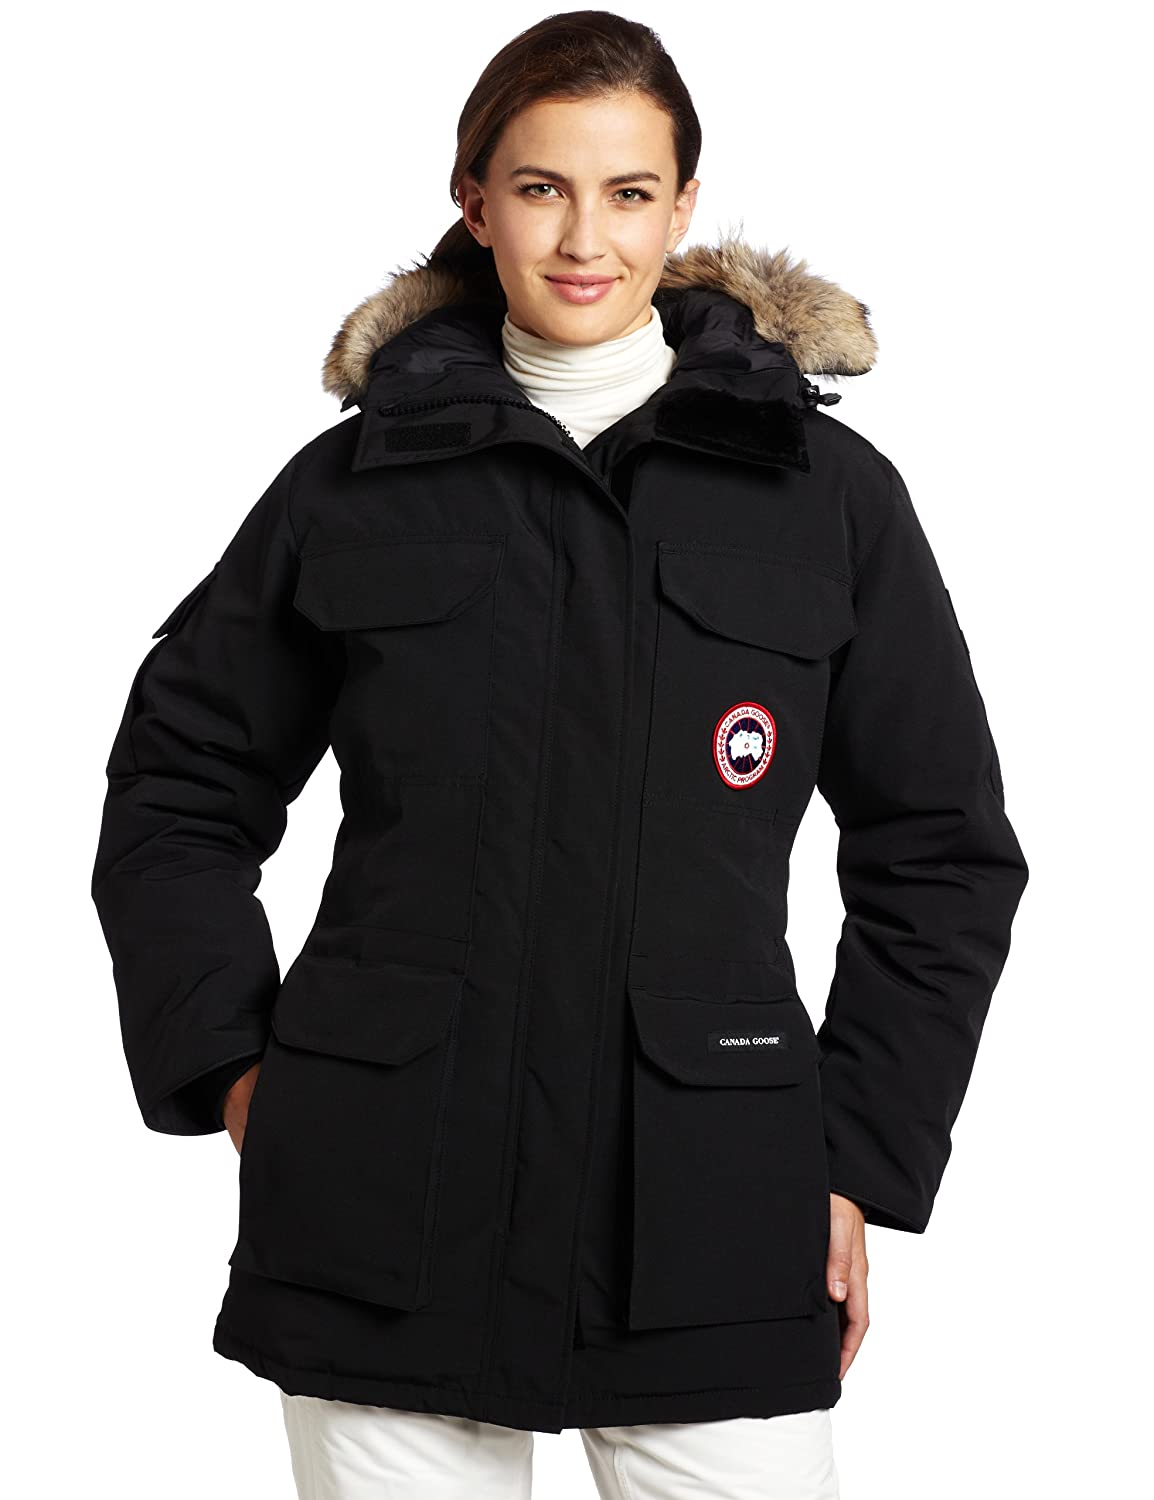 Coats for women canada